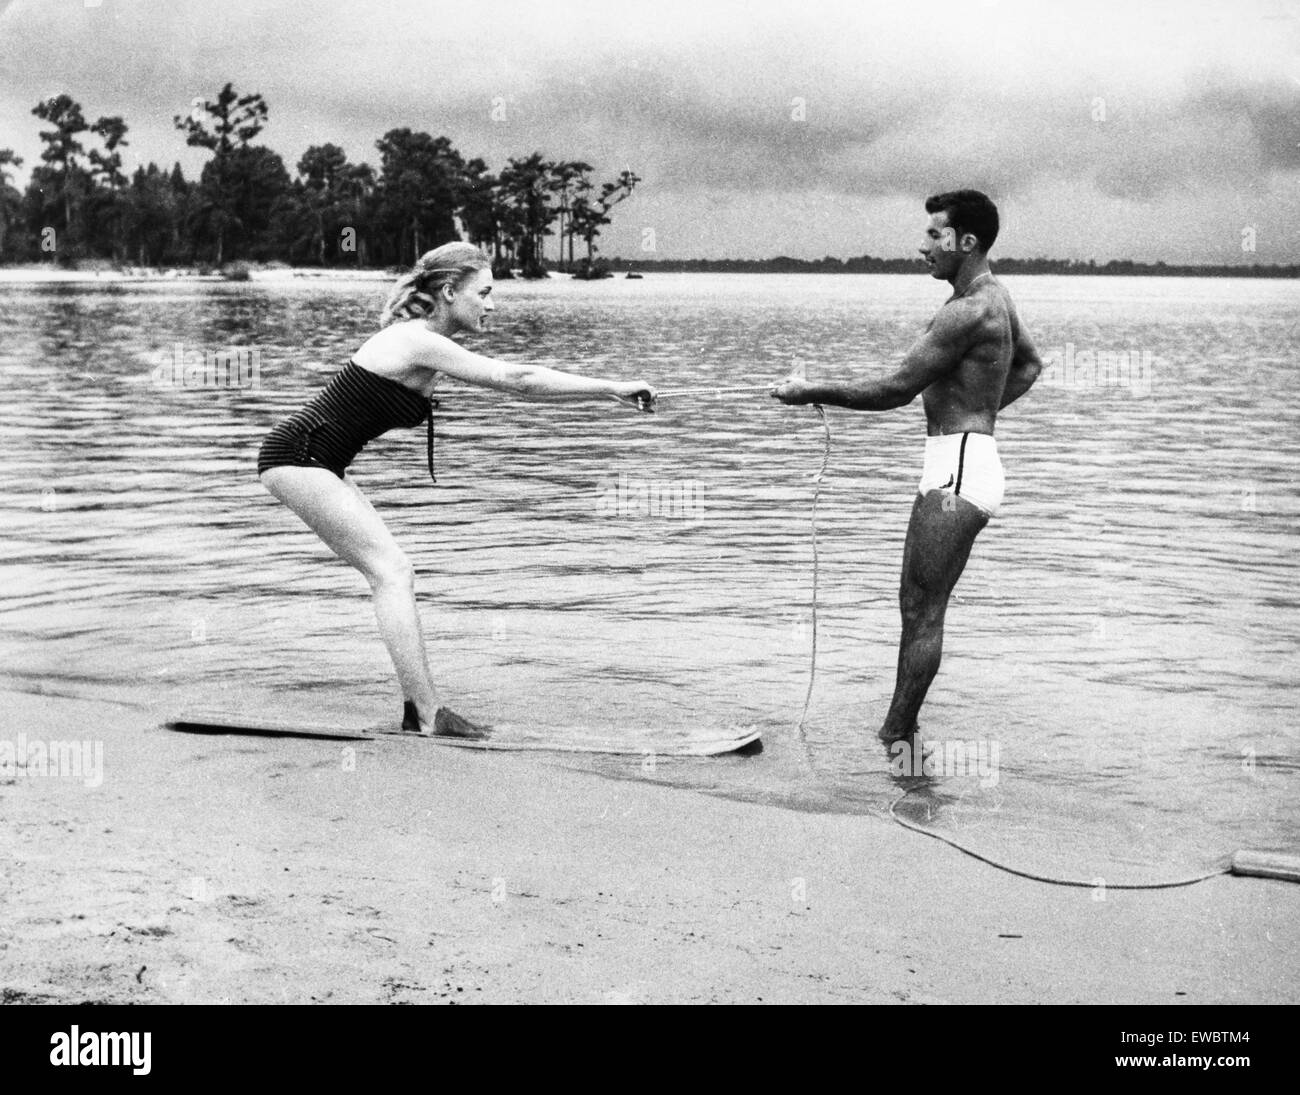 water ski lesson on the beach,1957 - Stock Image